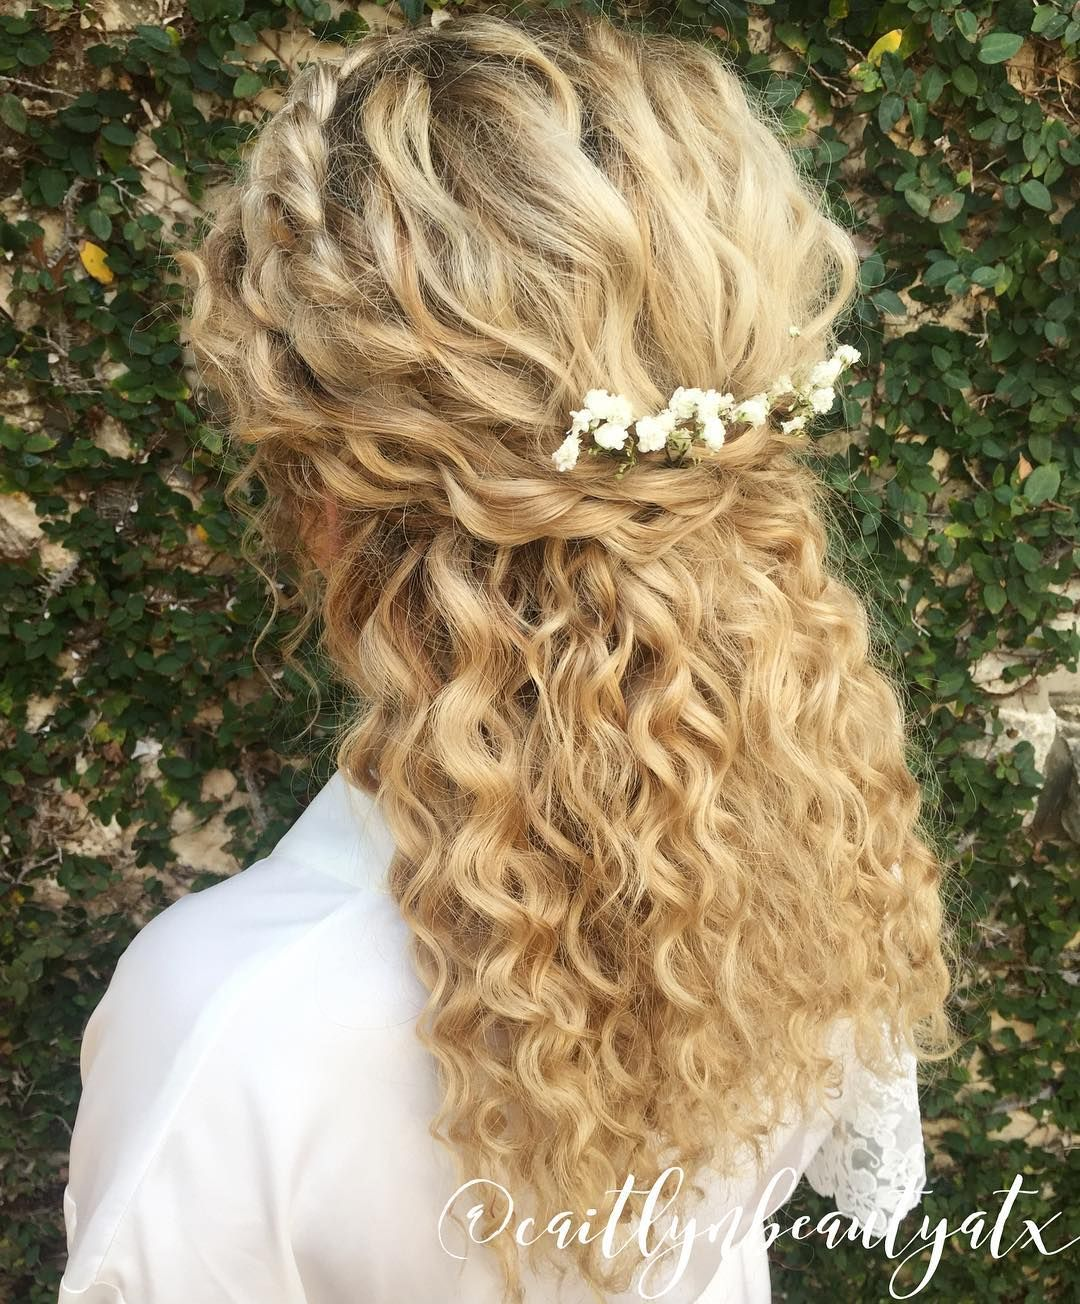 natural curly bridal hair. half up, half down with a braid